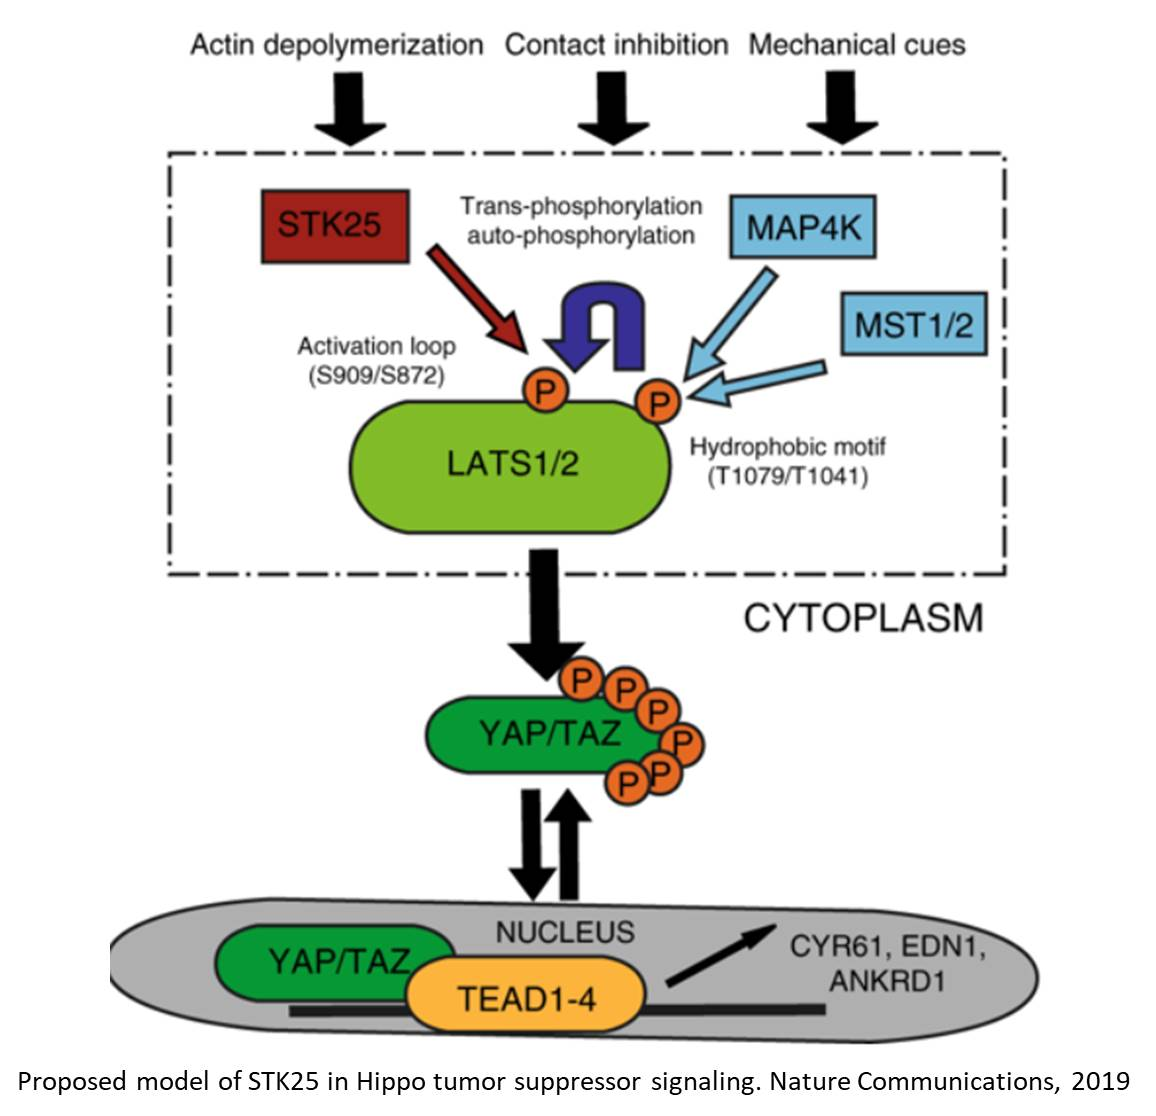 How a major tumor suppressor pathway becomes deactivated